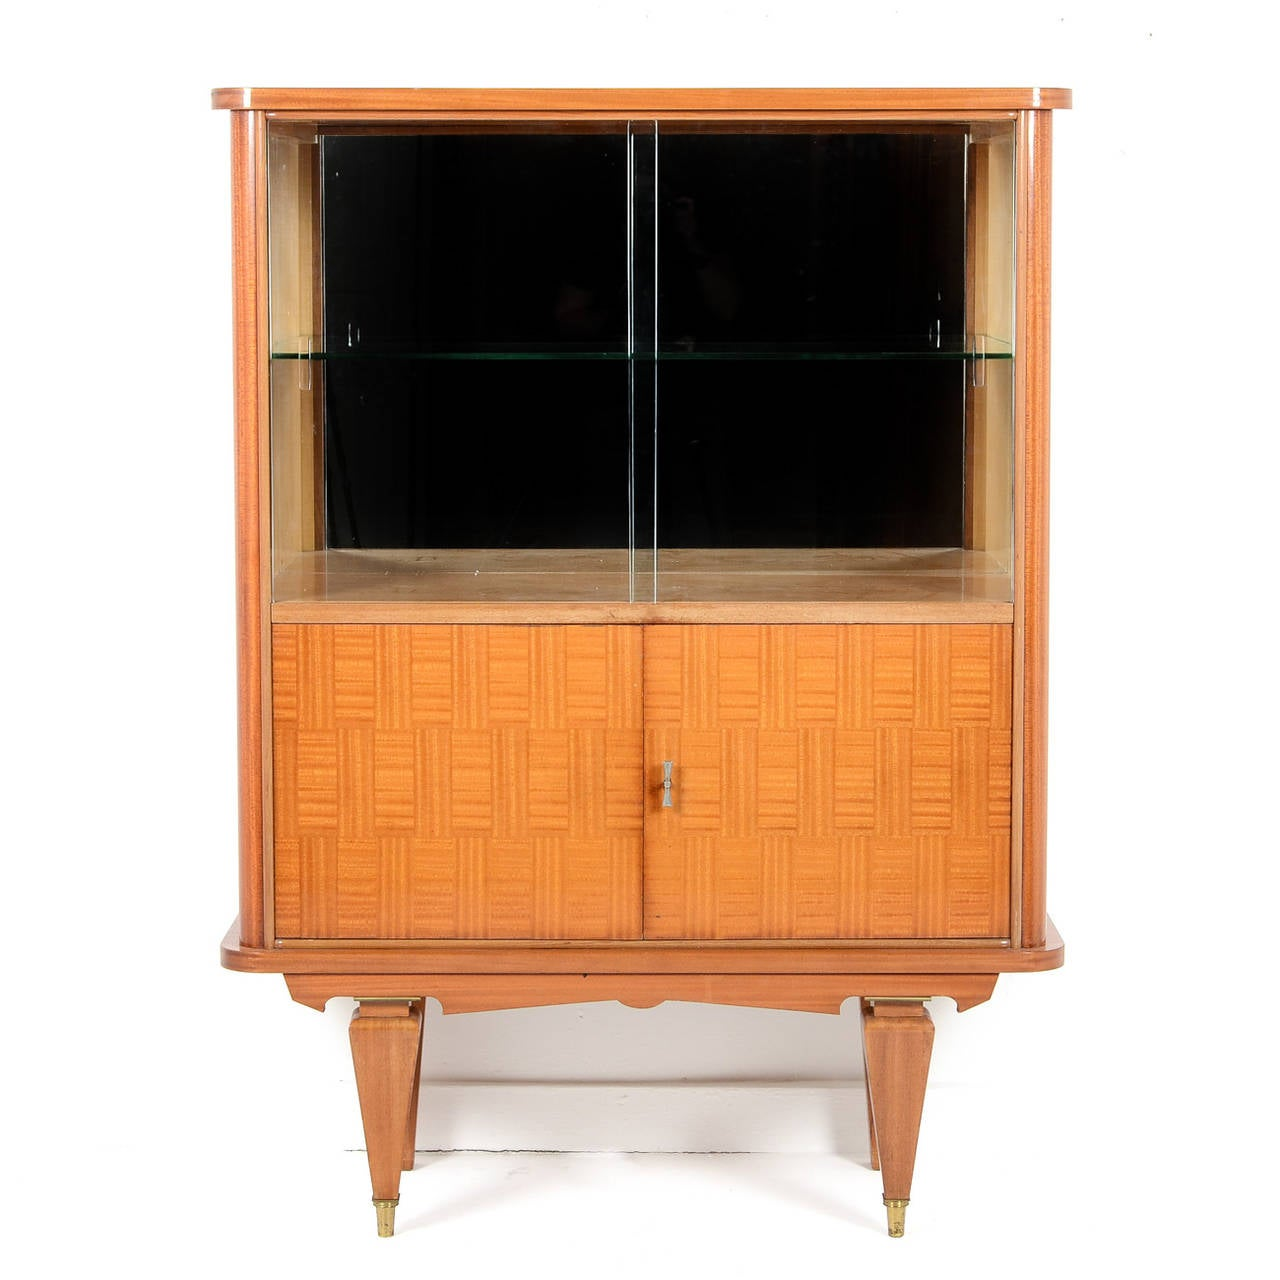 items similar to mid century modern bar cabinet from paris circa 1950